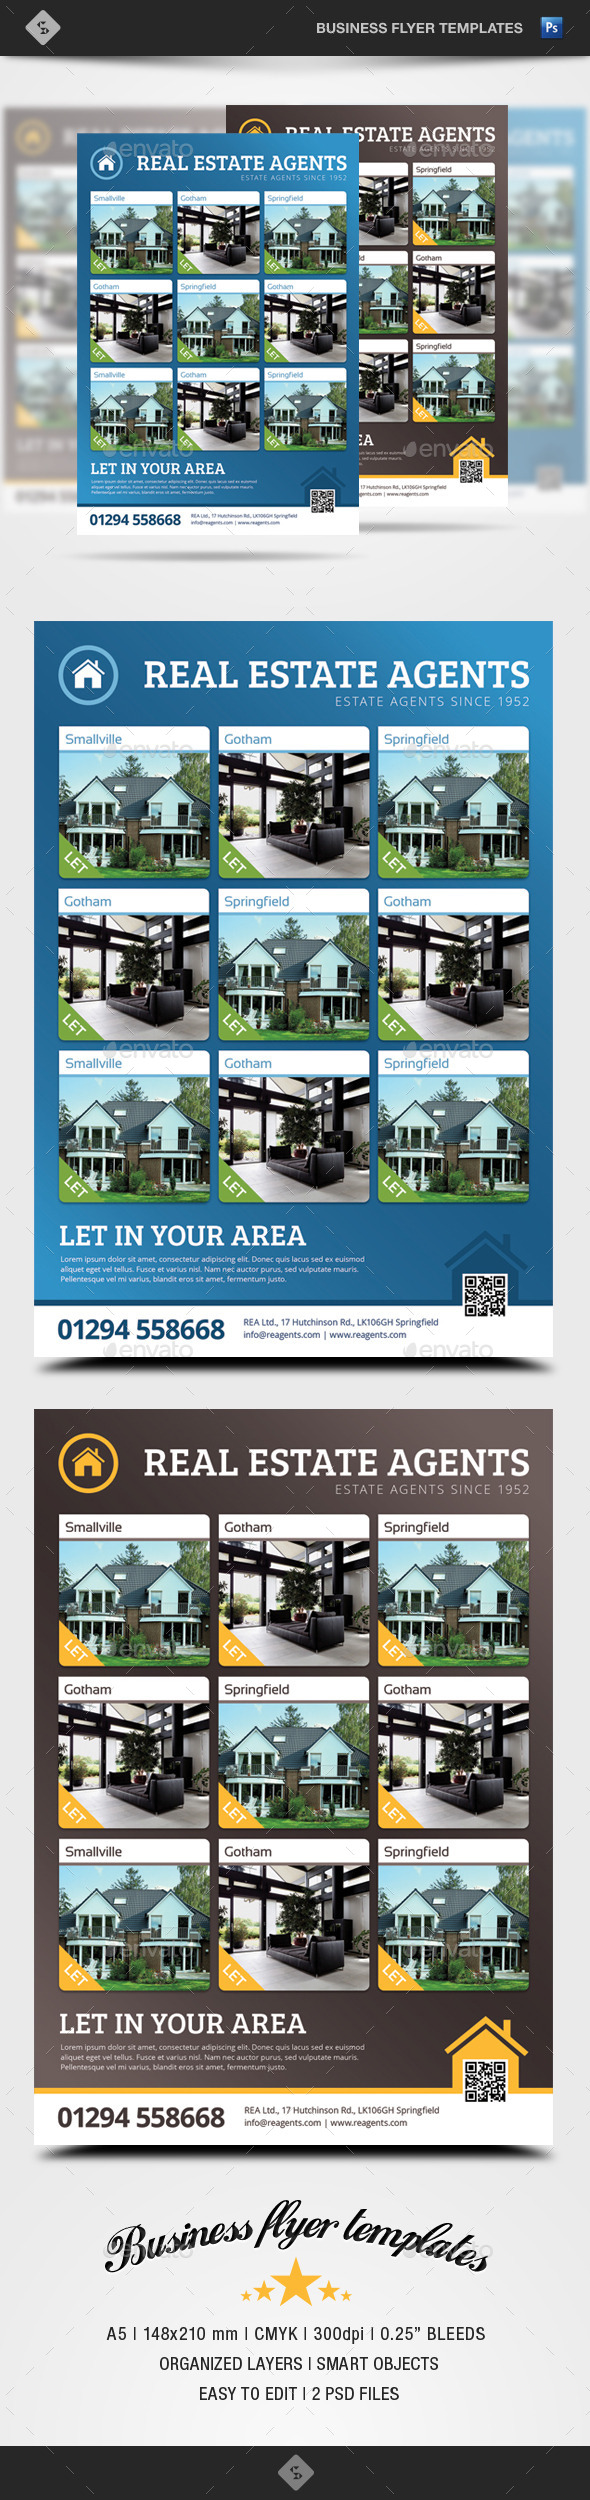 Real Estate Flyer Template - A5 - Corporate Flyers